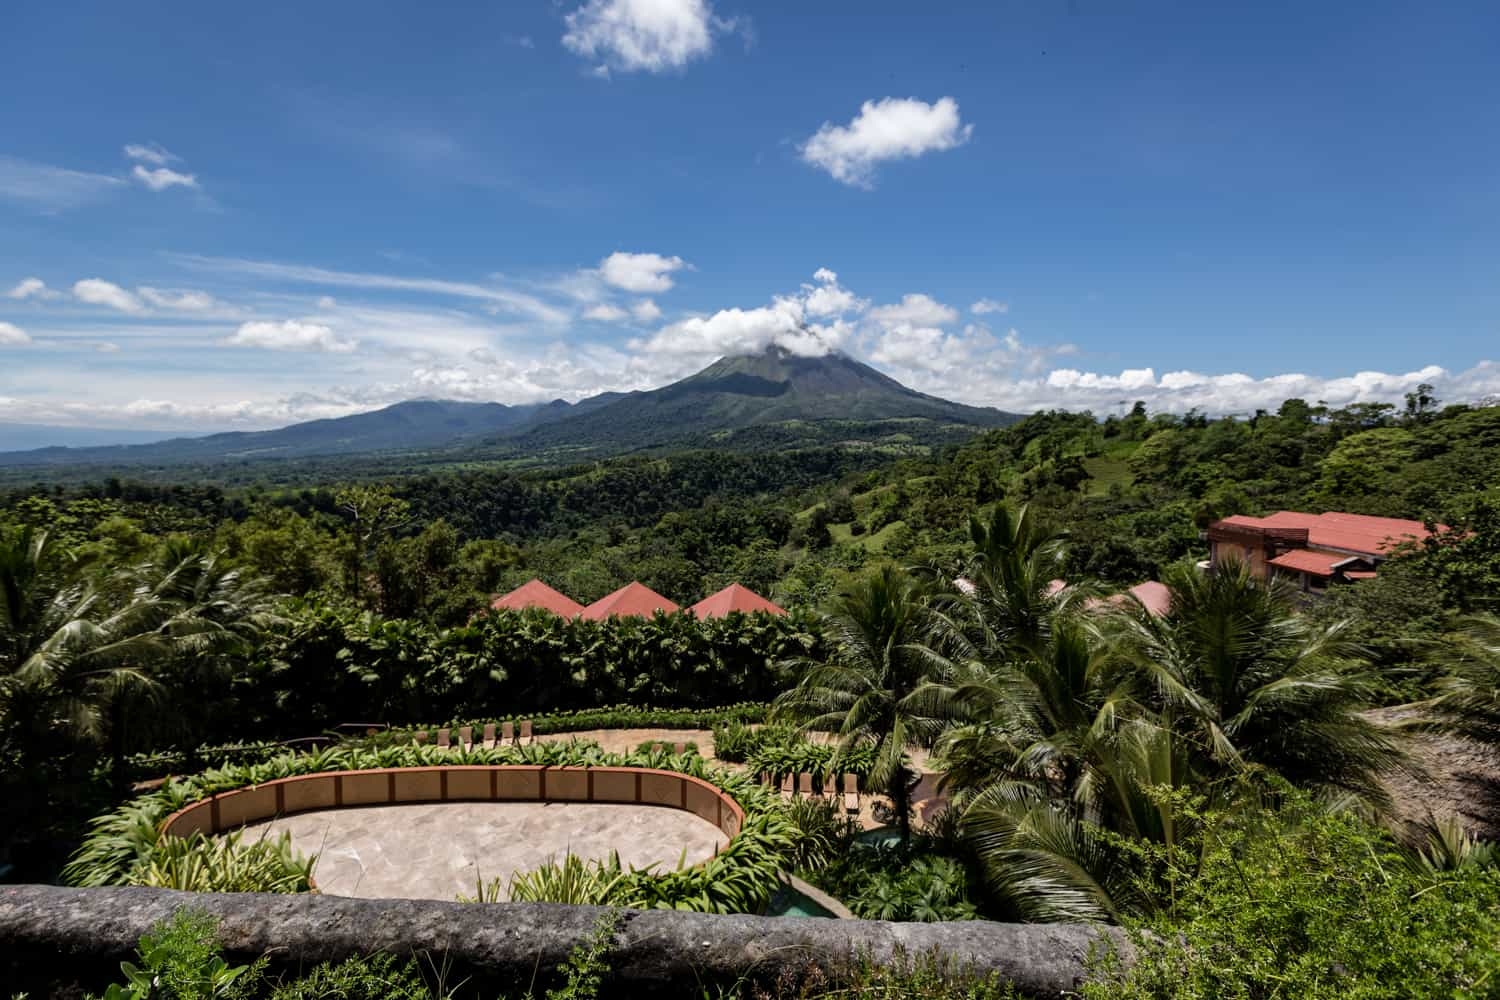 View of the Sunset Terrace from above with the Arenal Volcano in the distance.